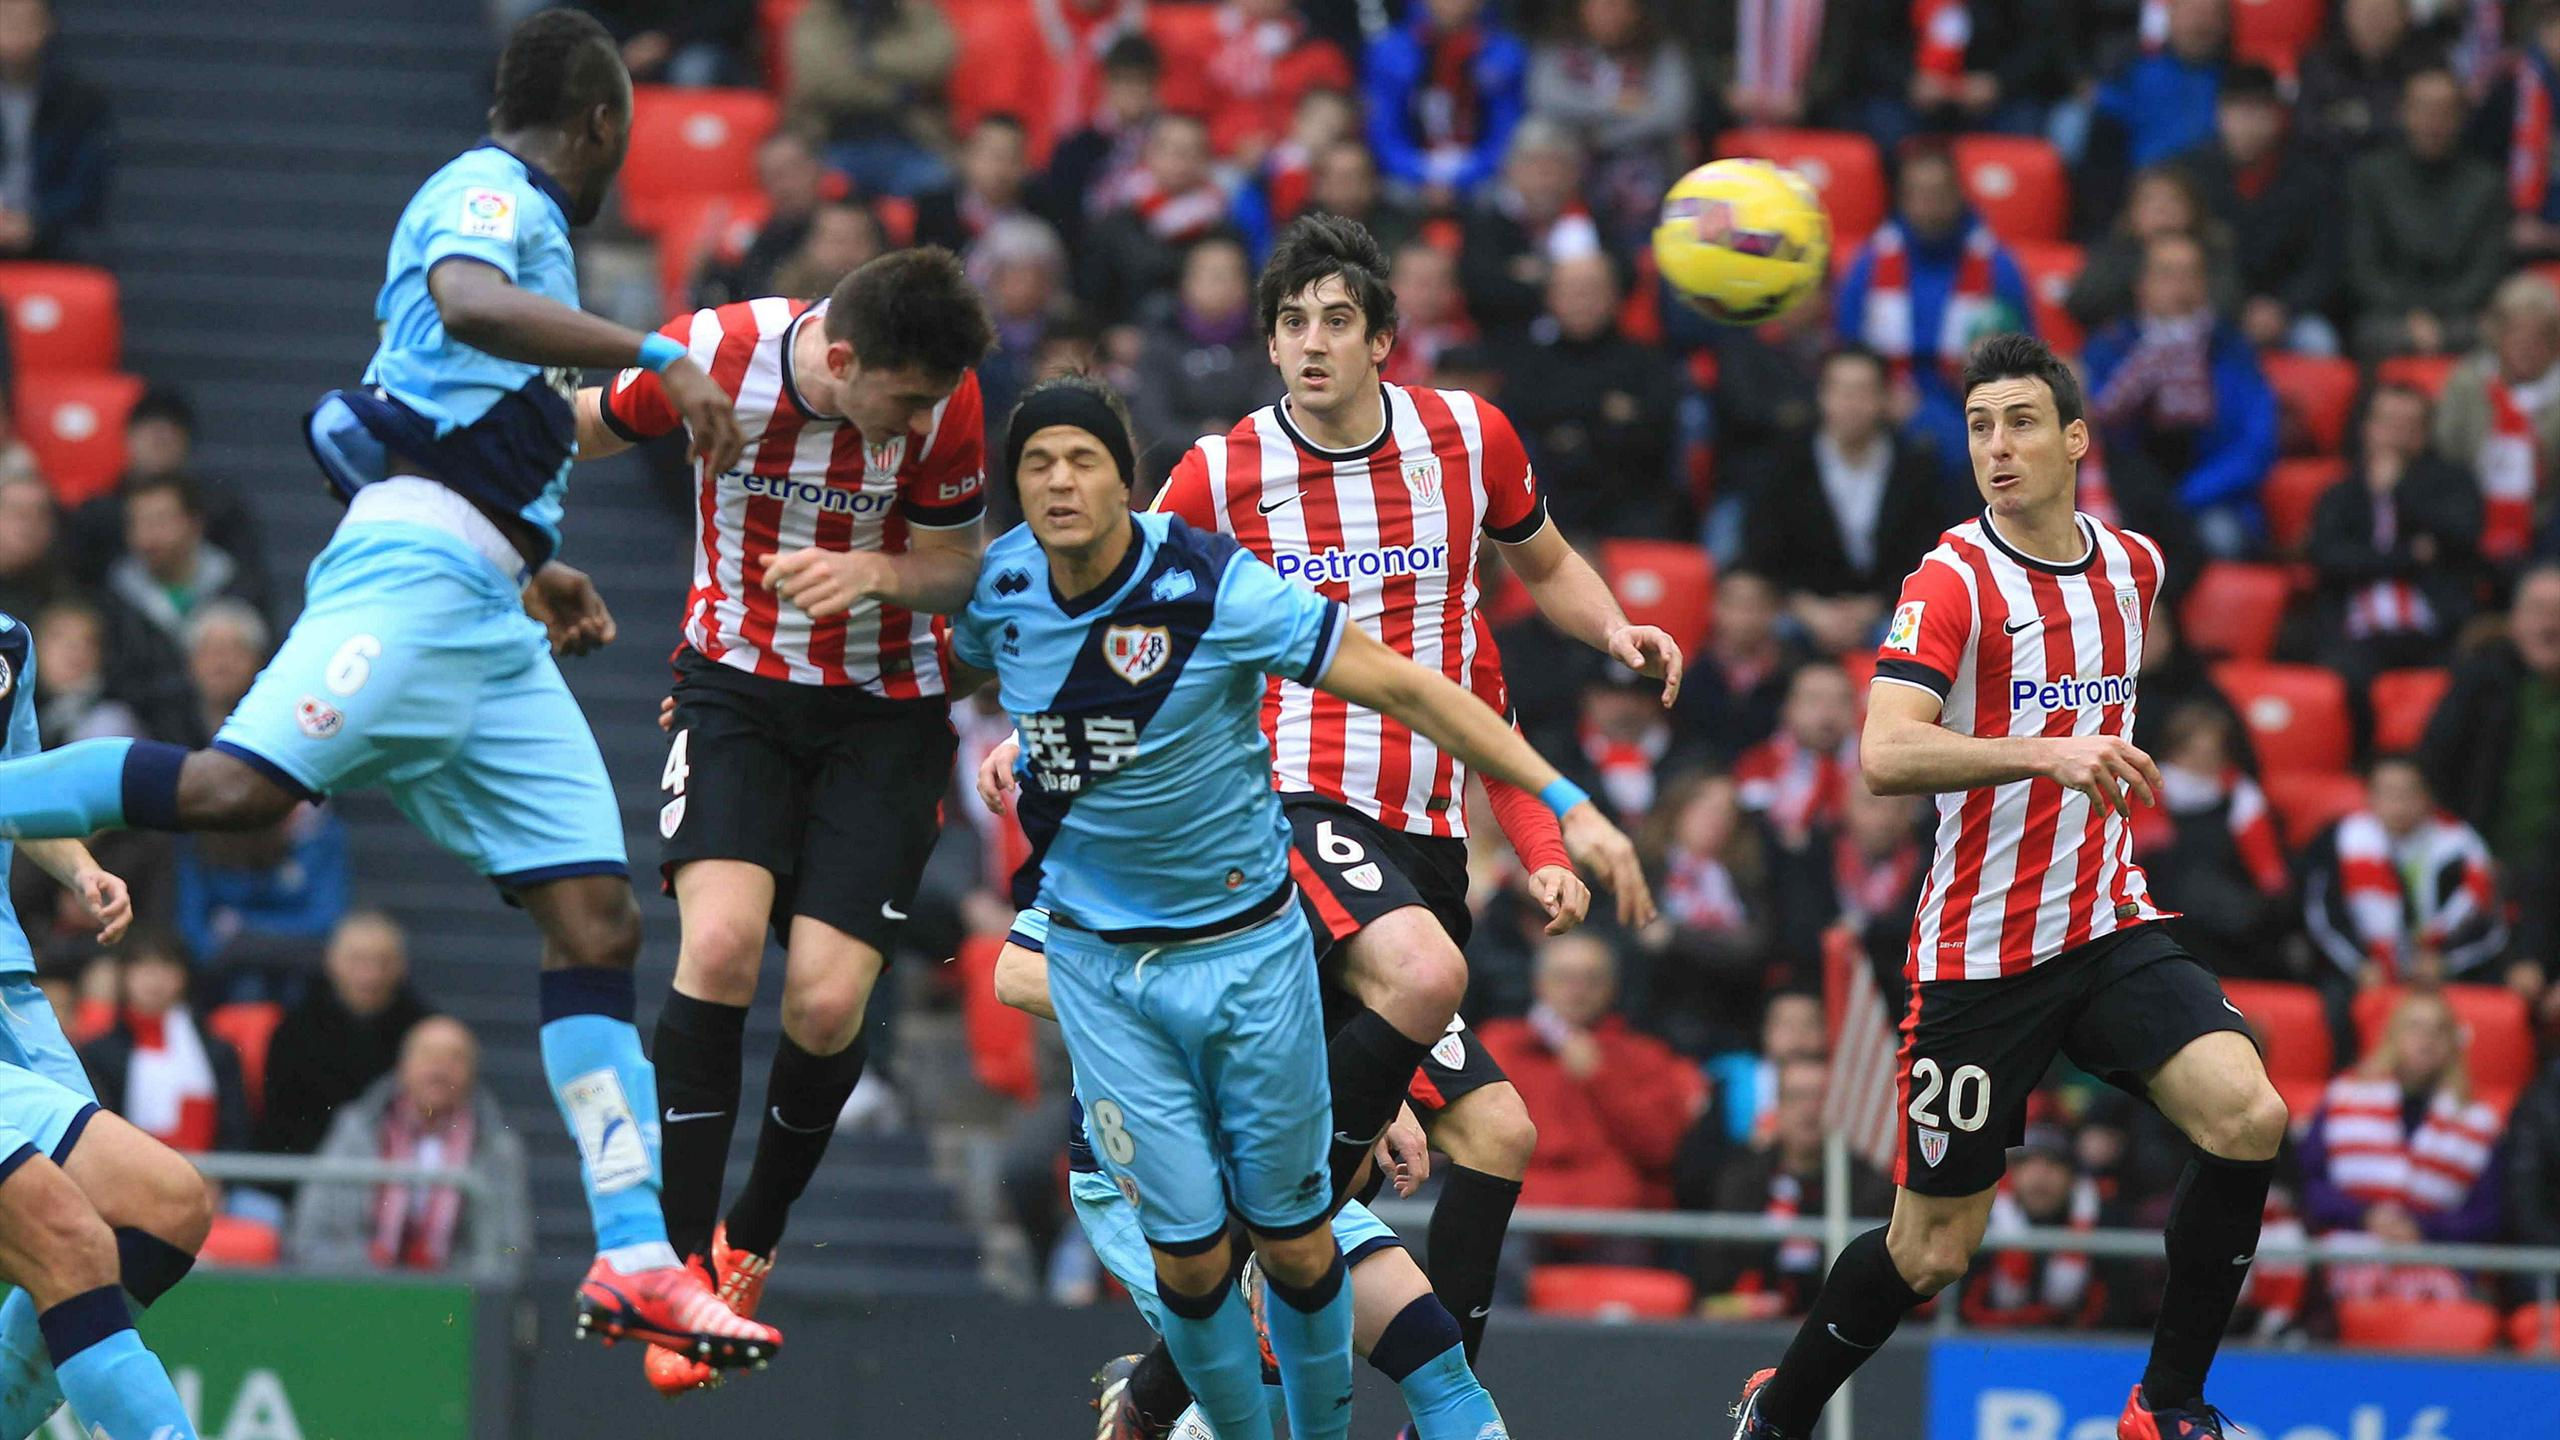 Video: Athletic Bilbao vs Rayo Vallecano